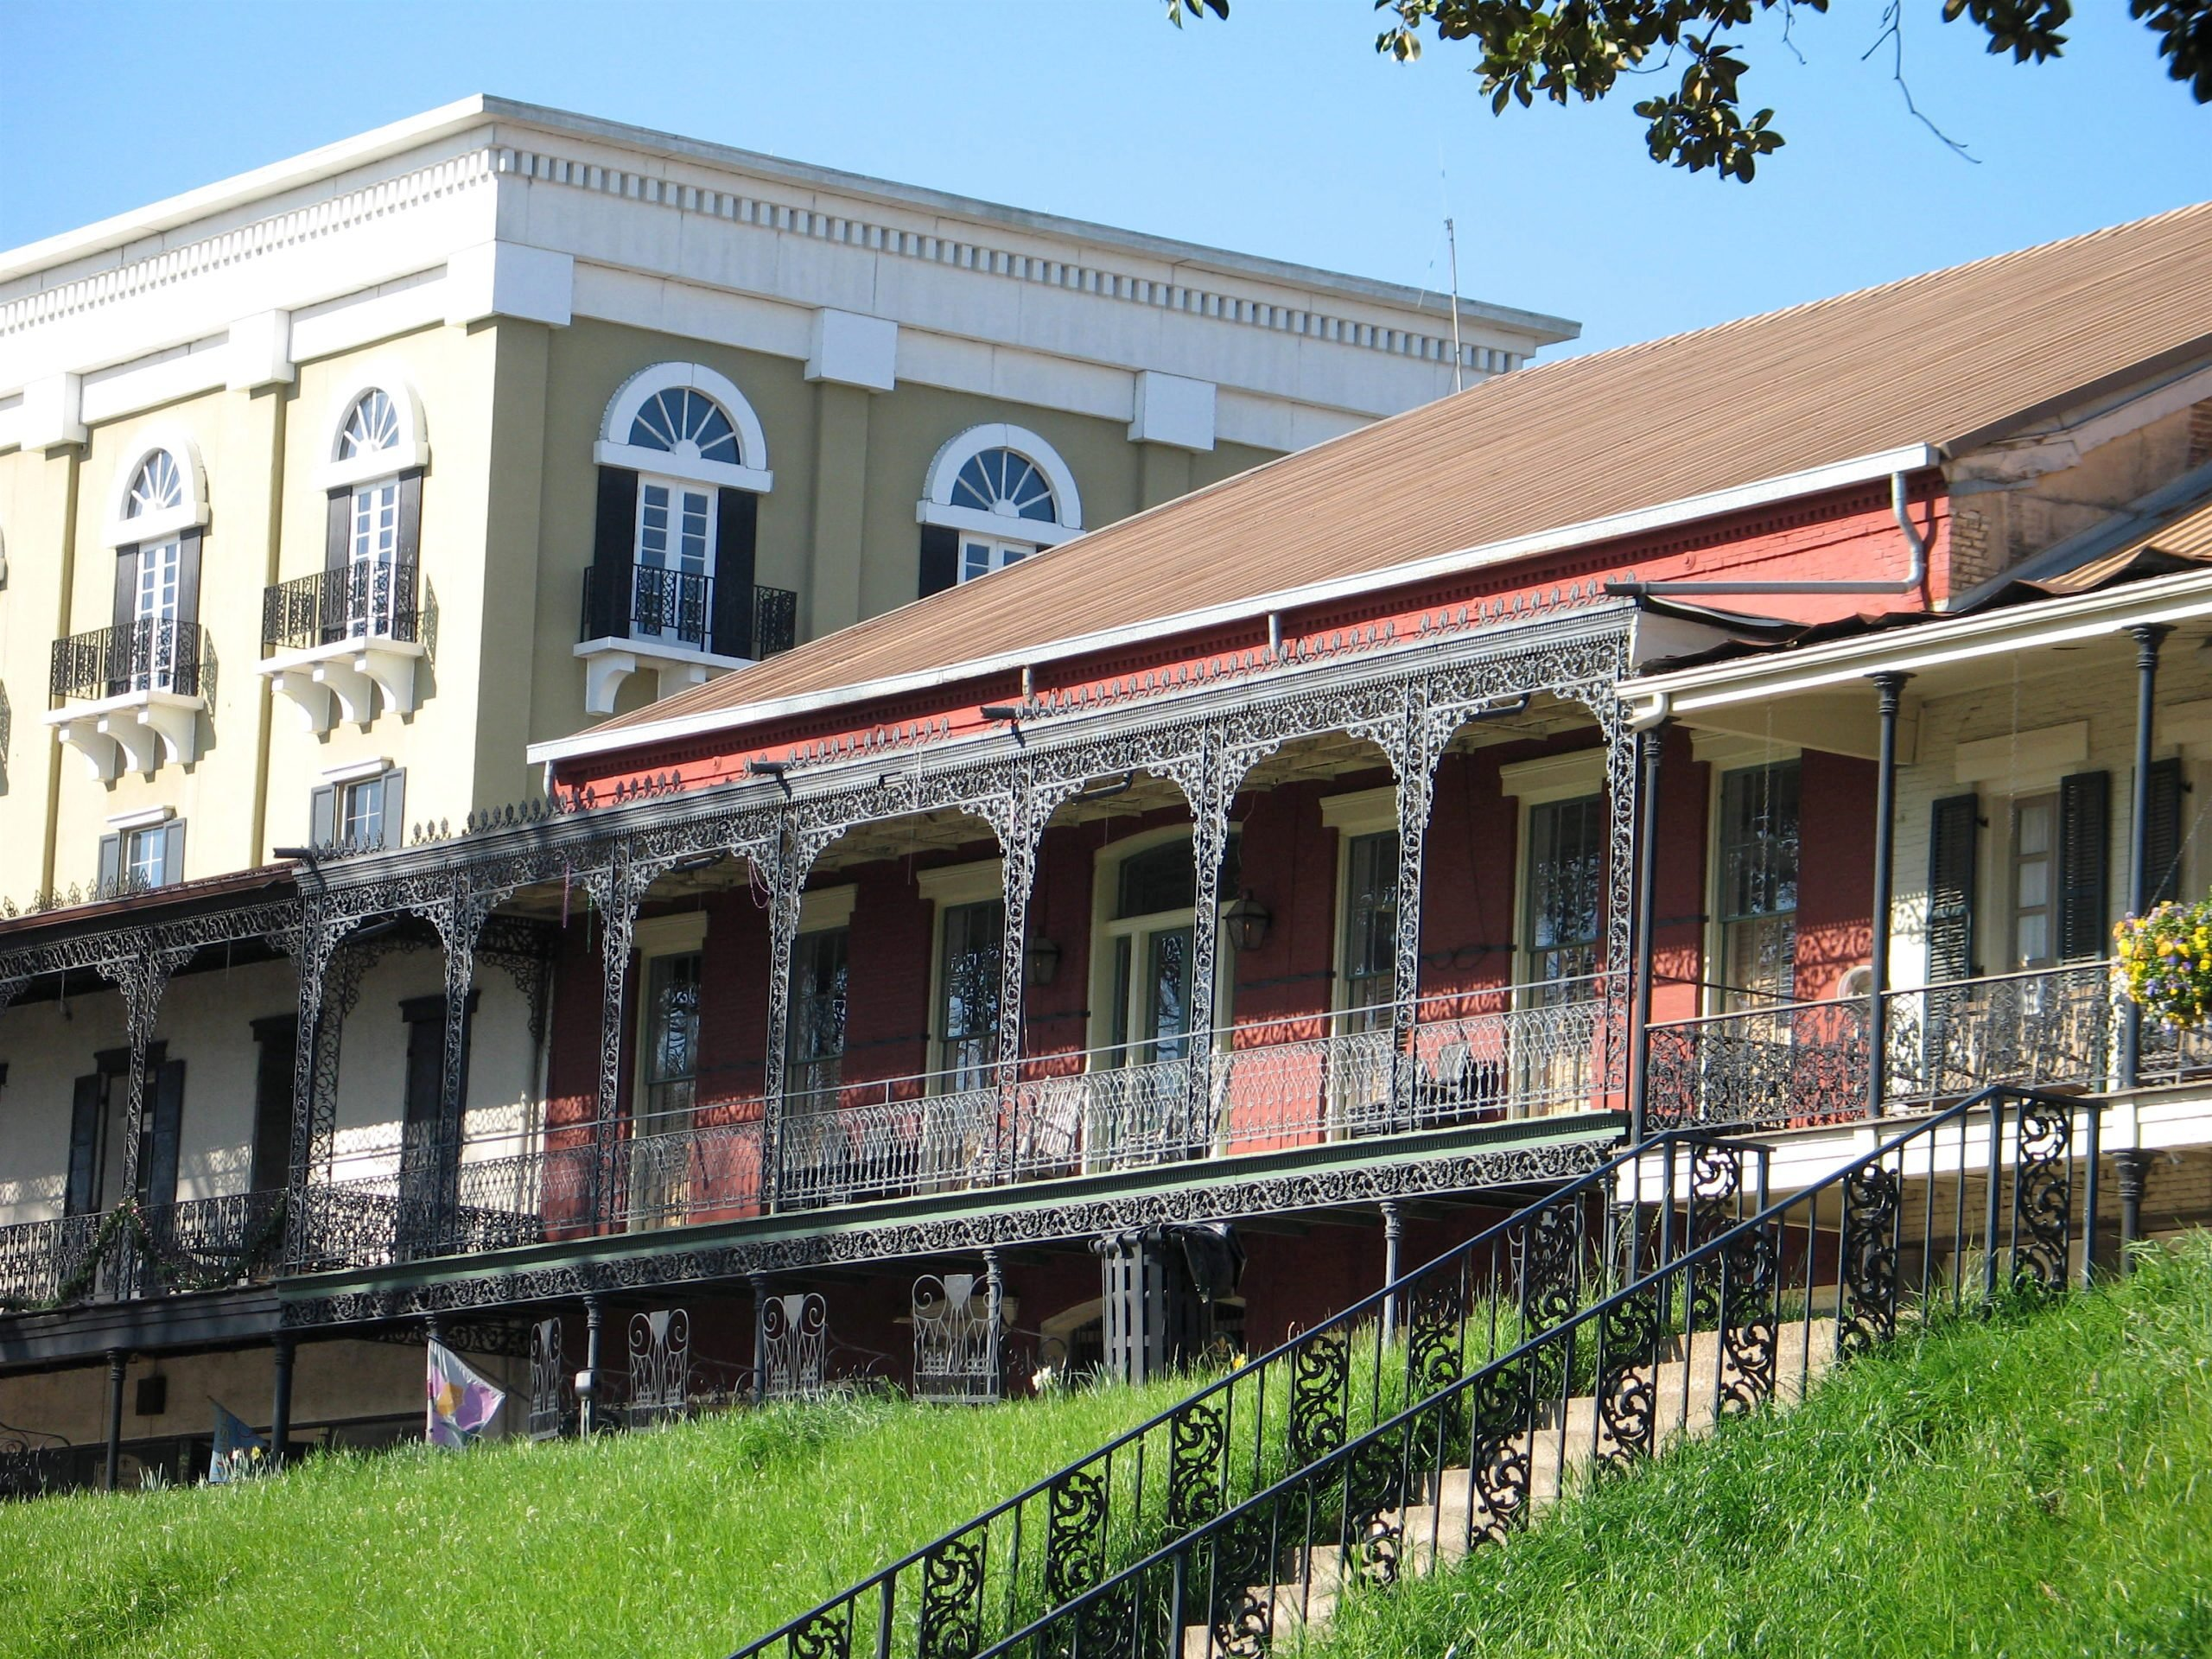 Ornate historic Louisiana buildings in Natchitoches